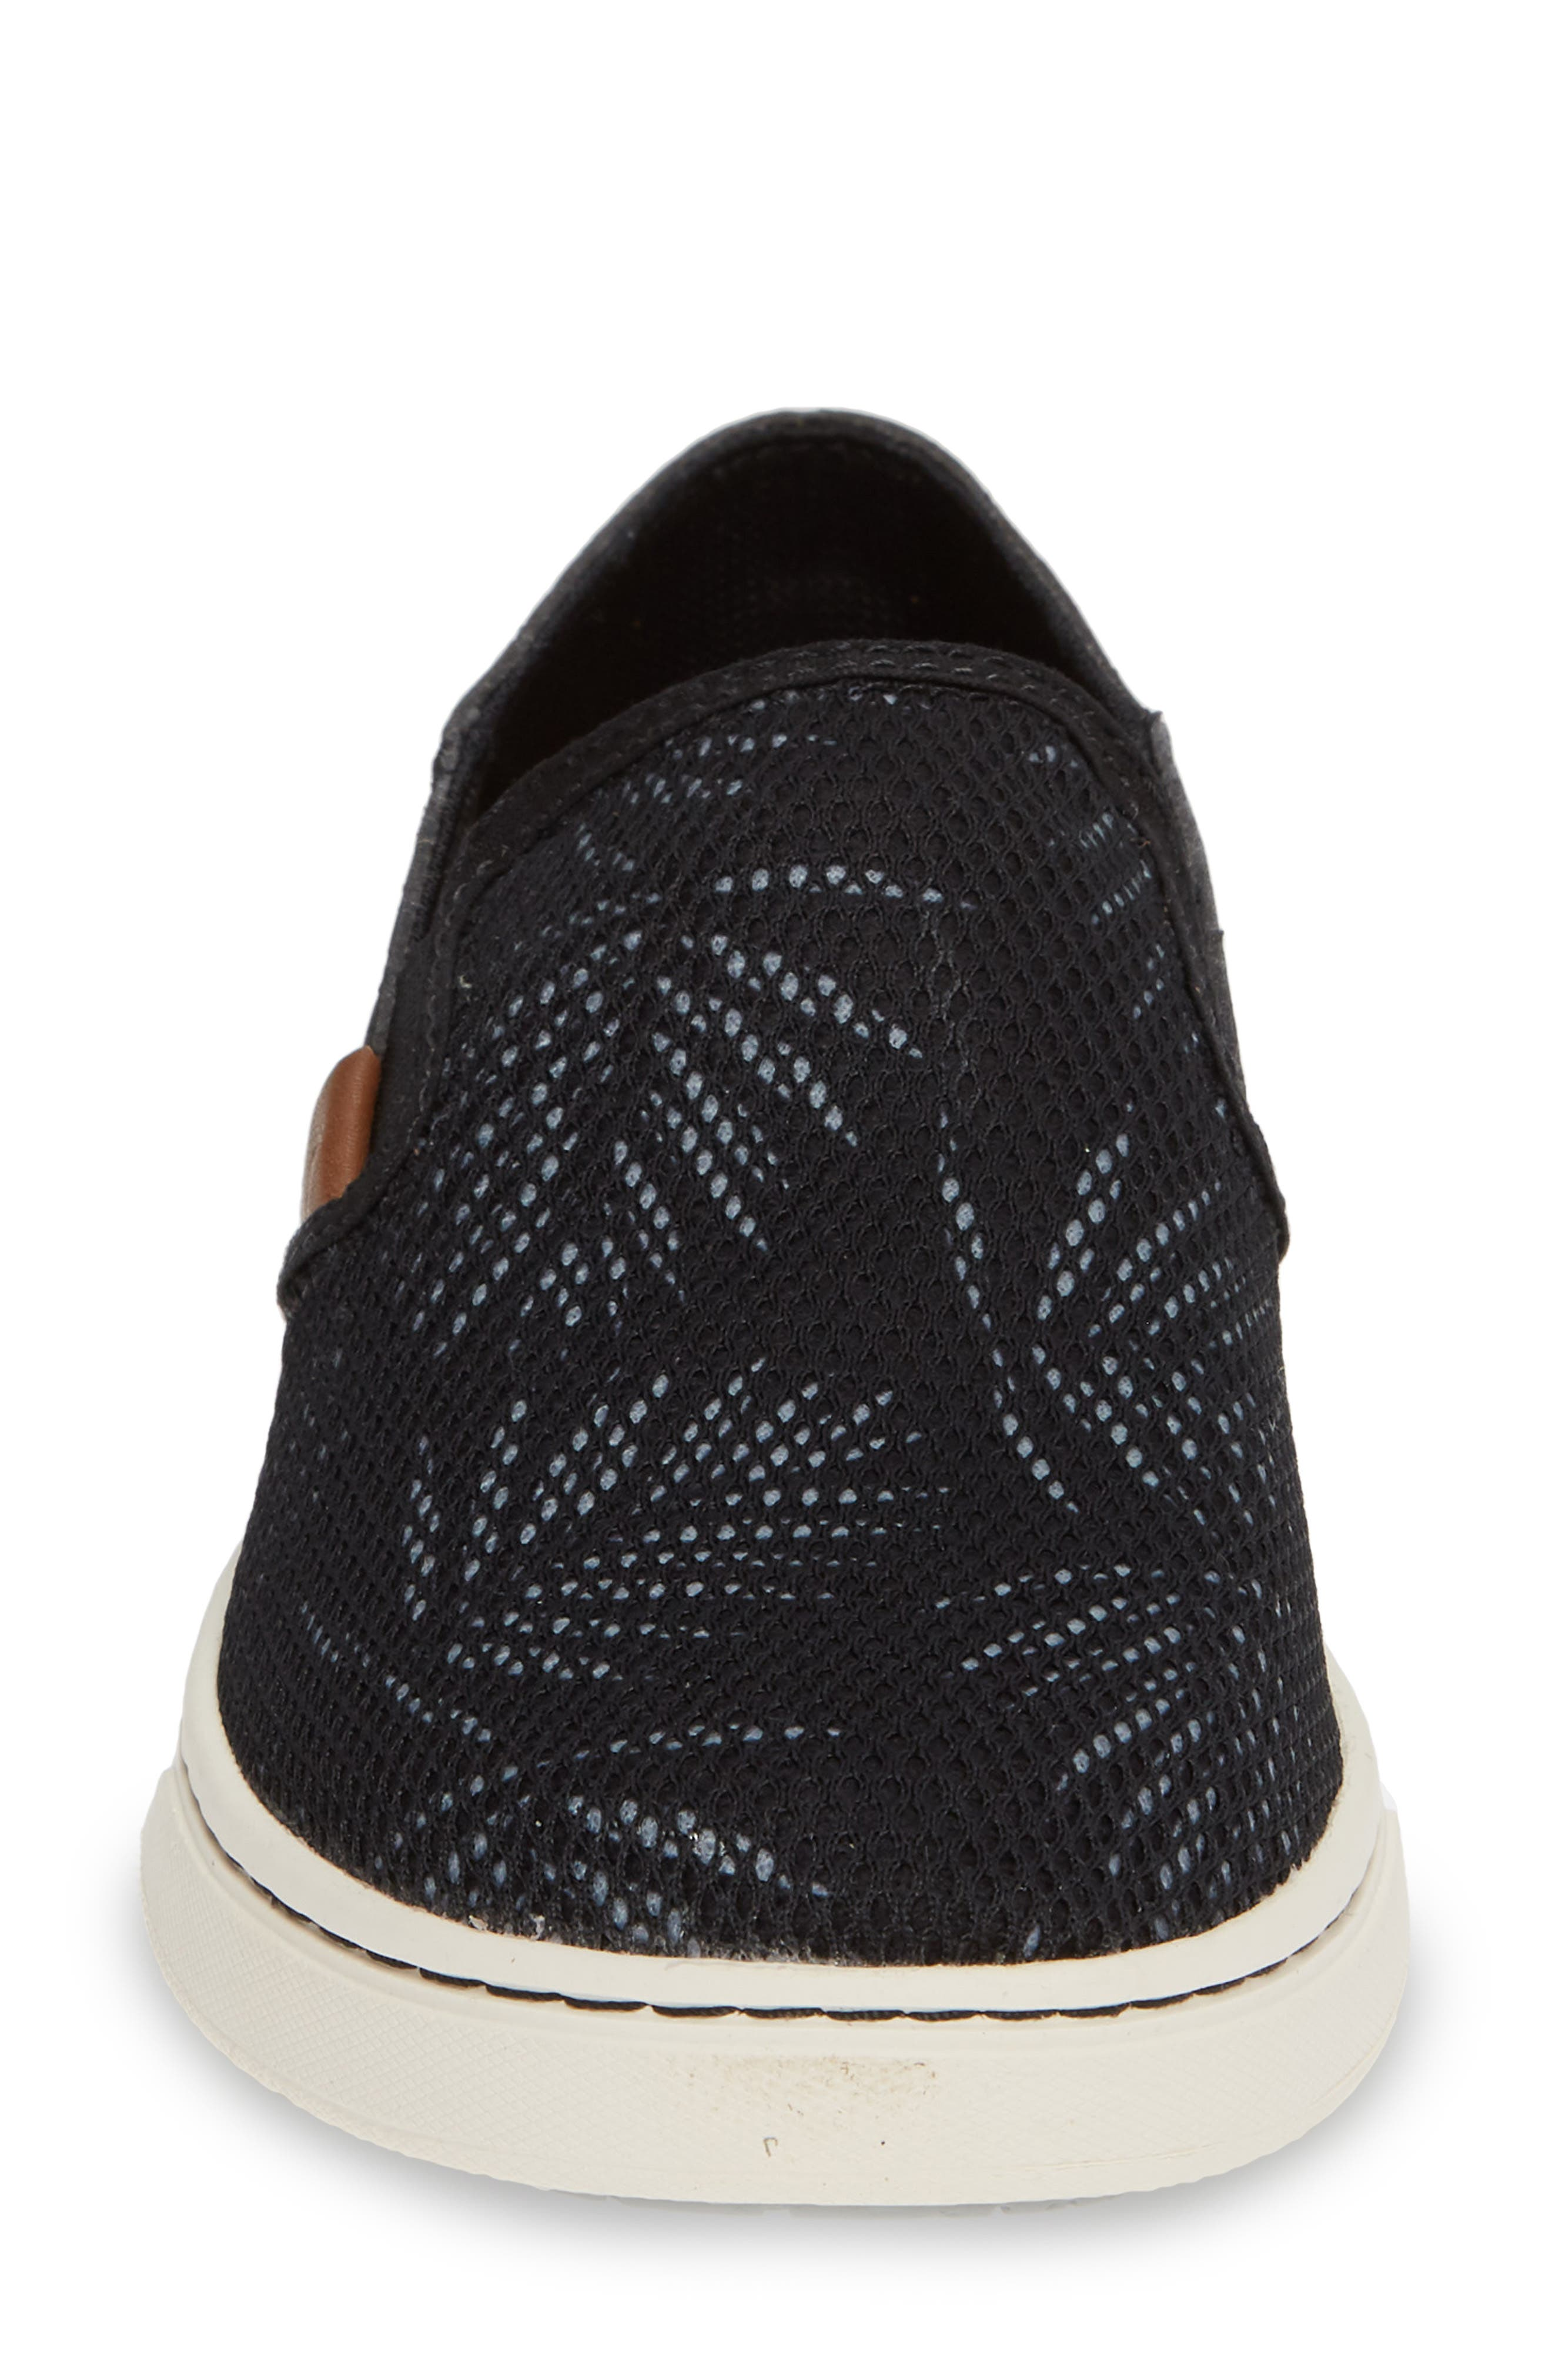 'Pehuea' Slip-On Sneaker,                             Alternate thumbnail 6, color,                             Black/ Palm Fabric